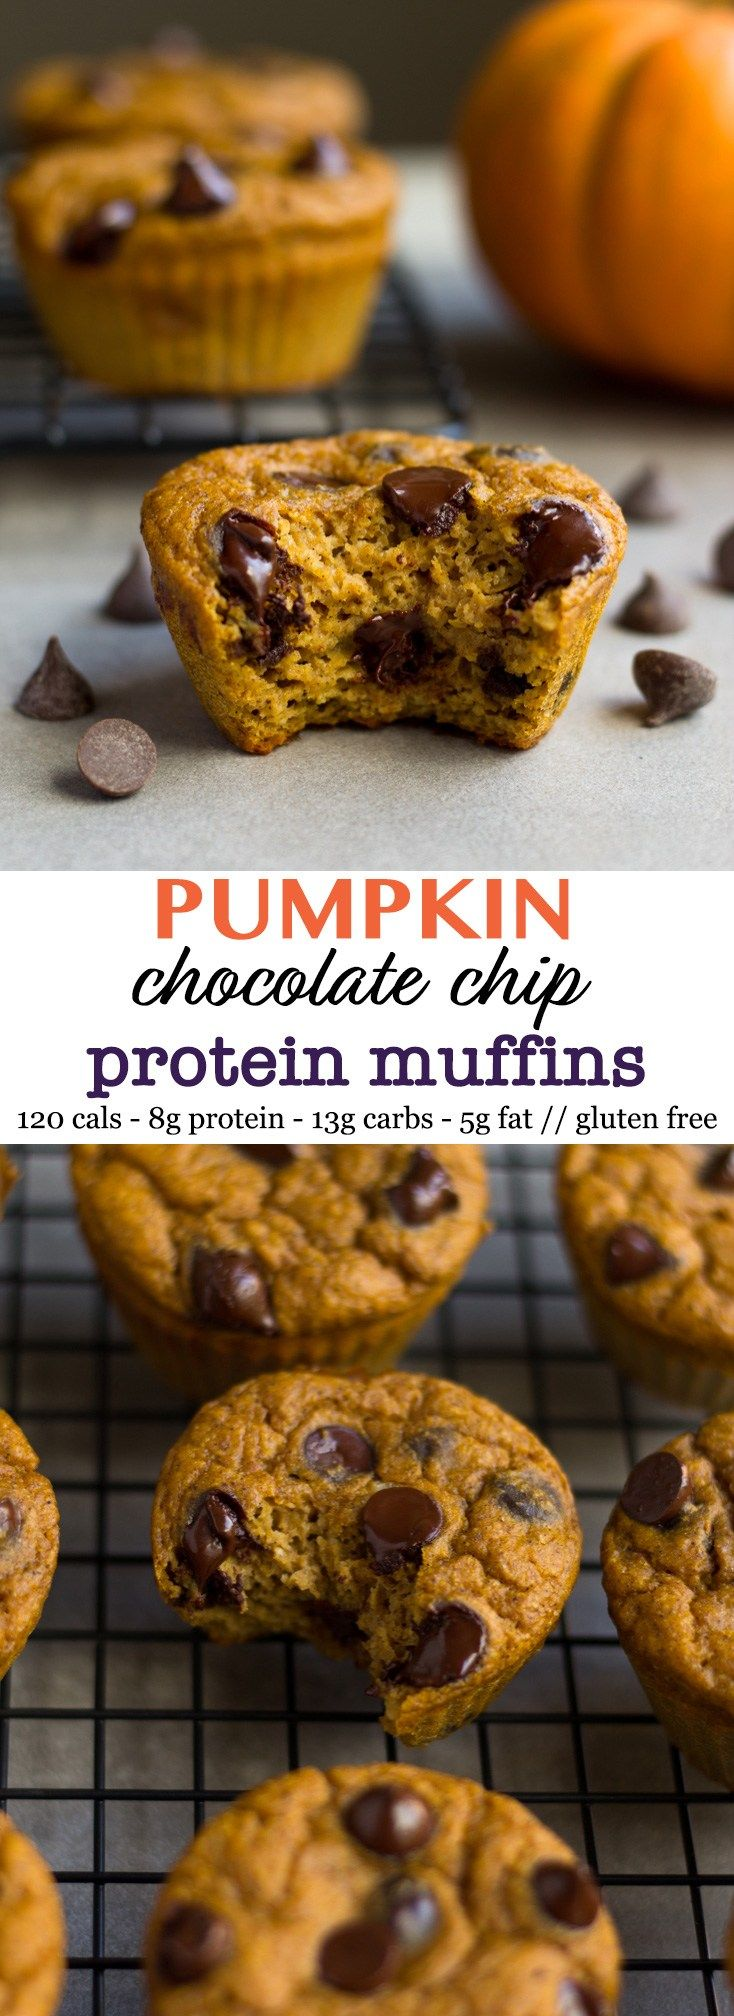 These Pumpkin Chocolate Chip Protein Muffins are made in a blender and are high protein & low carb, gluten free, and less than 120 calories - Eat the Gains